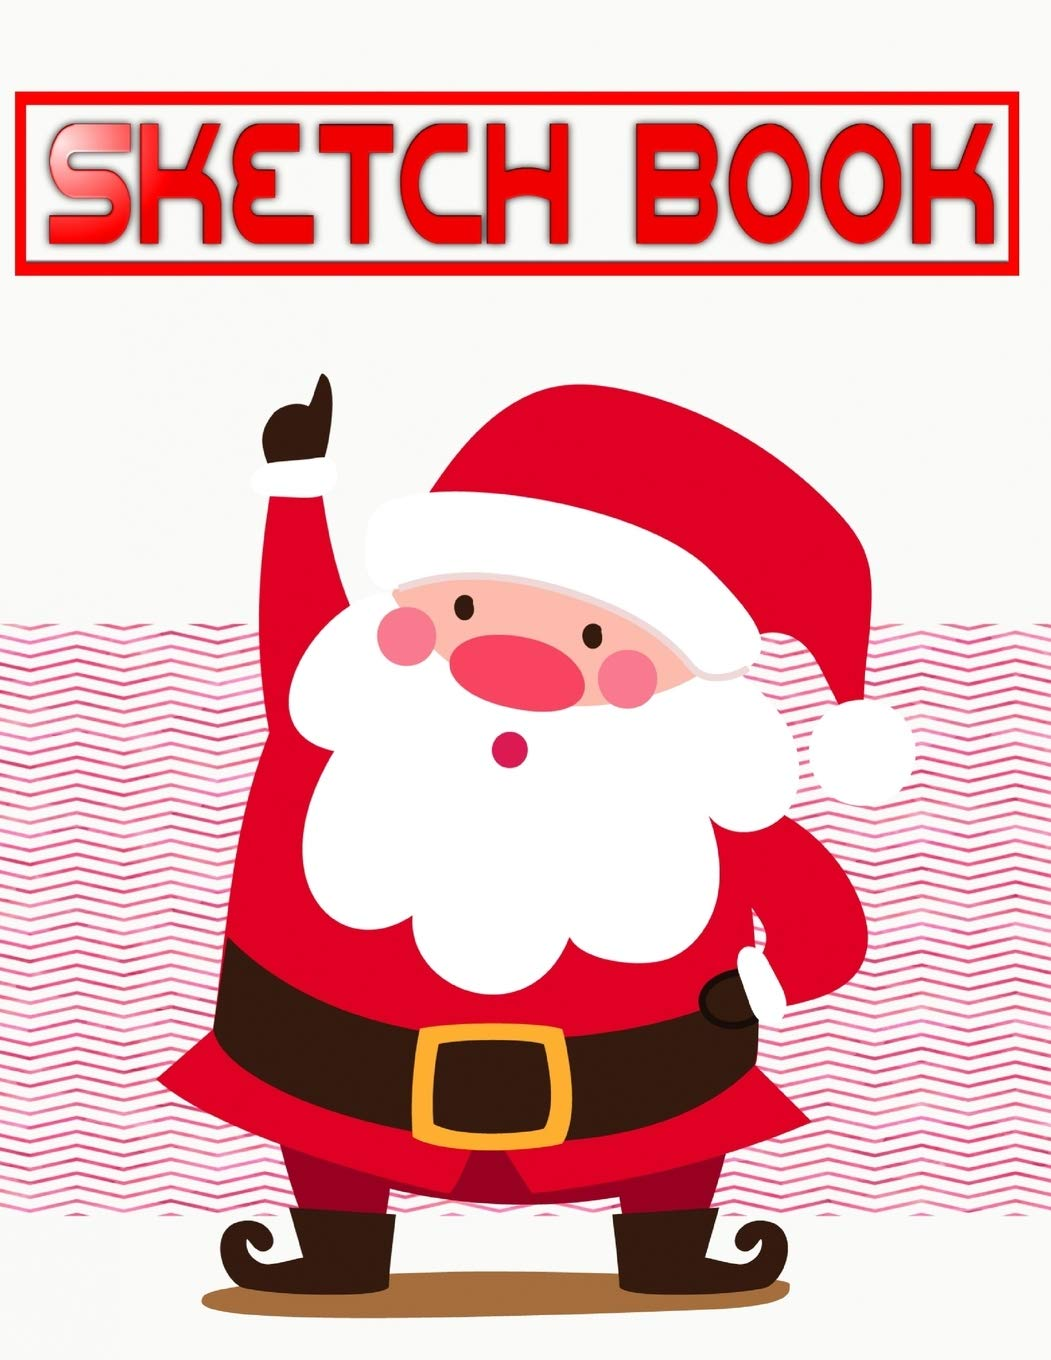 Sketchbook For Drawing Best Christmas Ideas Blank Doodle Draw Sketch Books Blank Lover Easy Size 8 5 X 11 Inch 110 Page Best Prints Special Gift Sketch Book Pura 9781672498876 Amazon Com Books